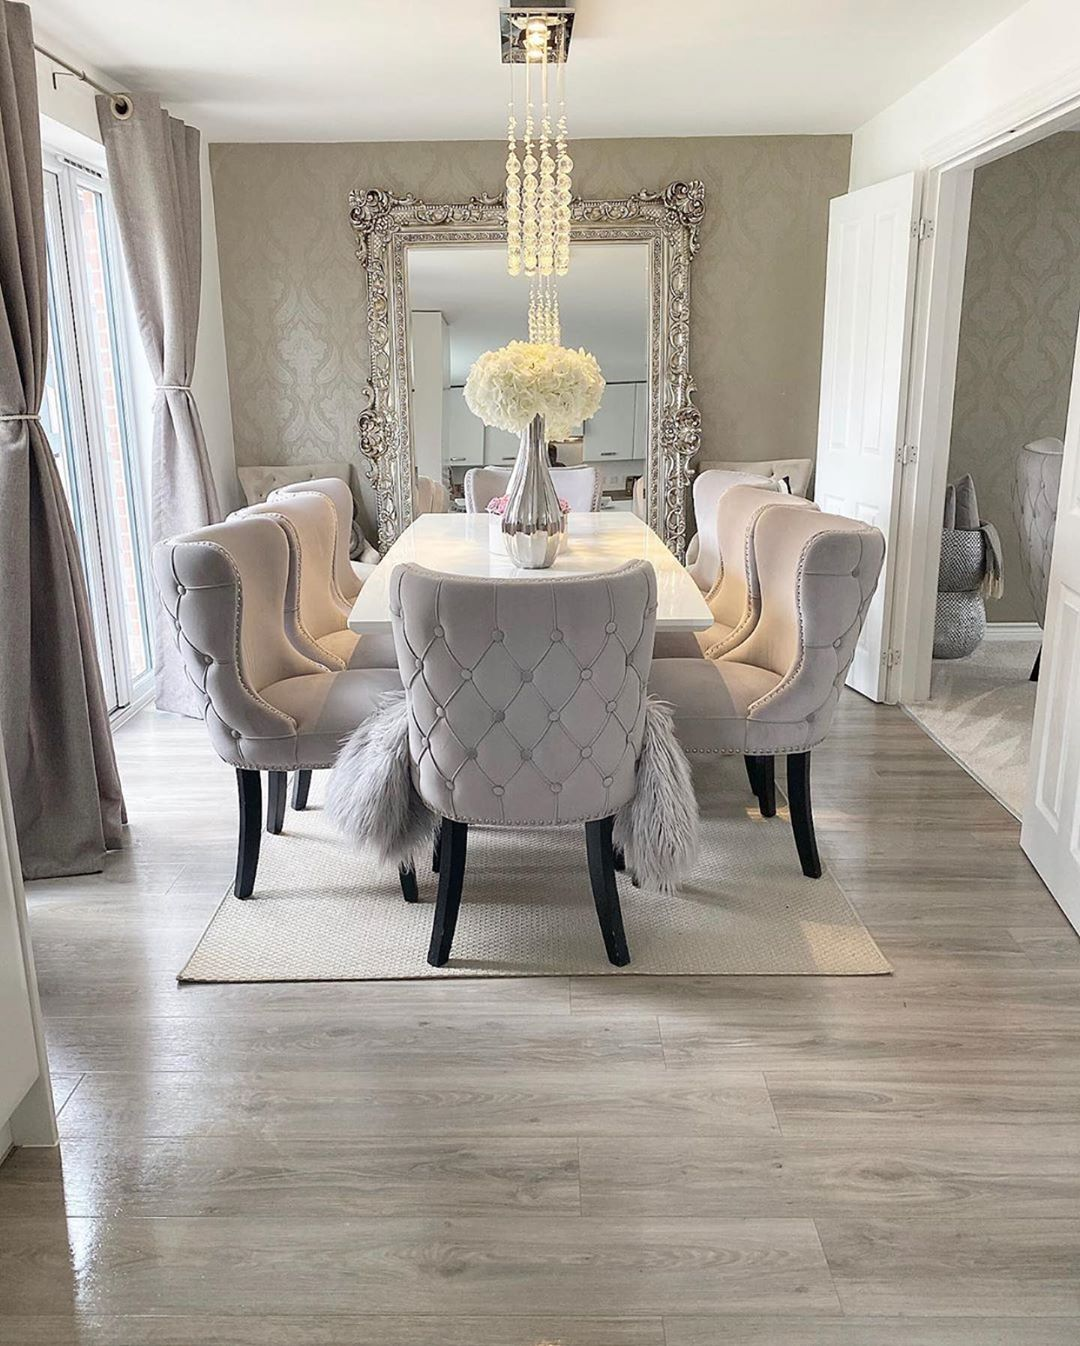 Vicky On Instagram Good Morning Hope You Have A Wonderful Day Ahead It S Rainy Here In Mi Dream Dining Room Dinning Room Table Decor Luxury Dining Room